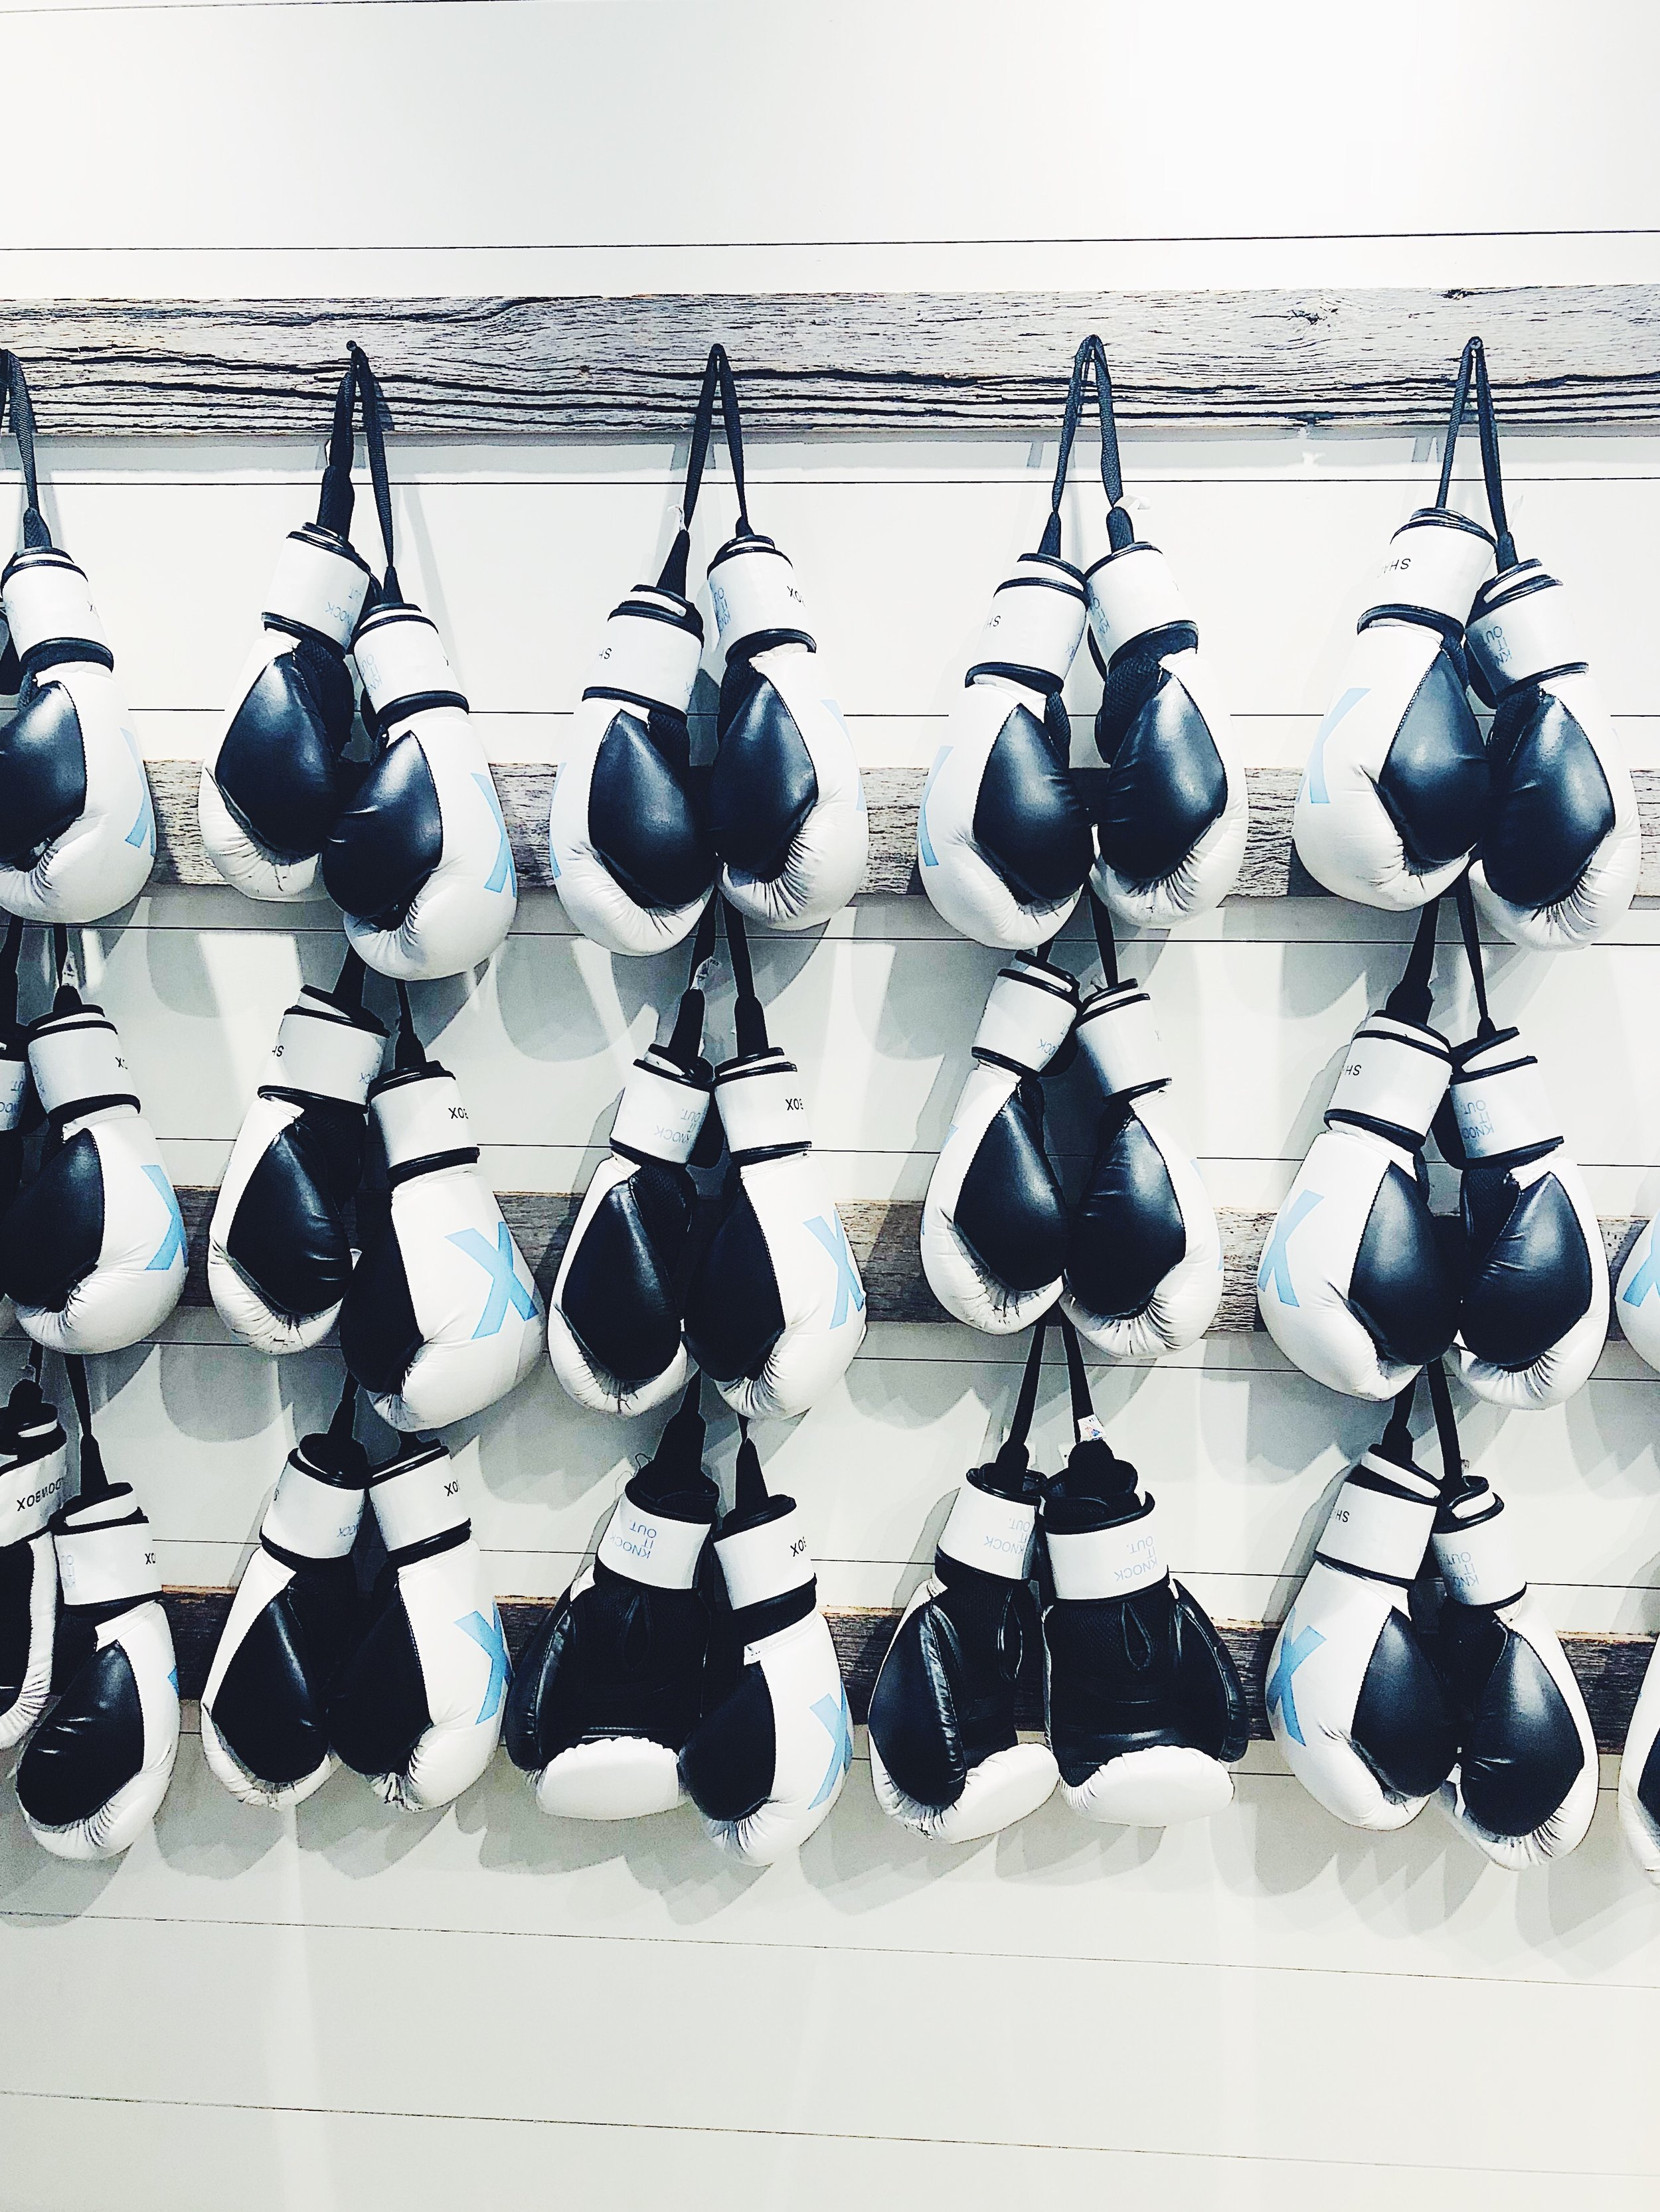 The wall of boxing gloves at shadowbox in new york and dumbo.